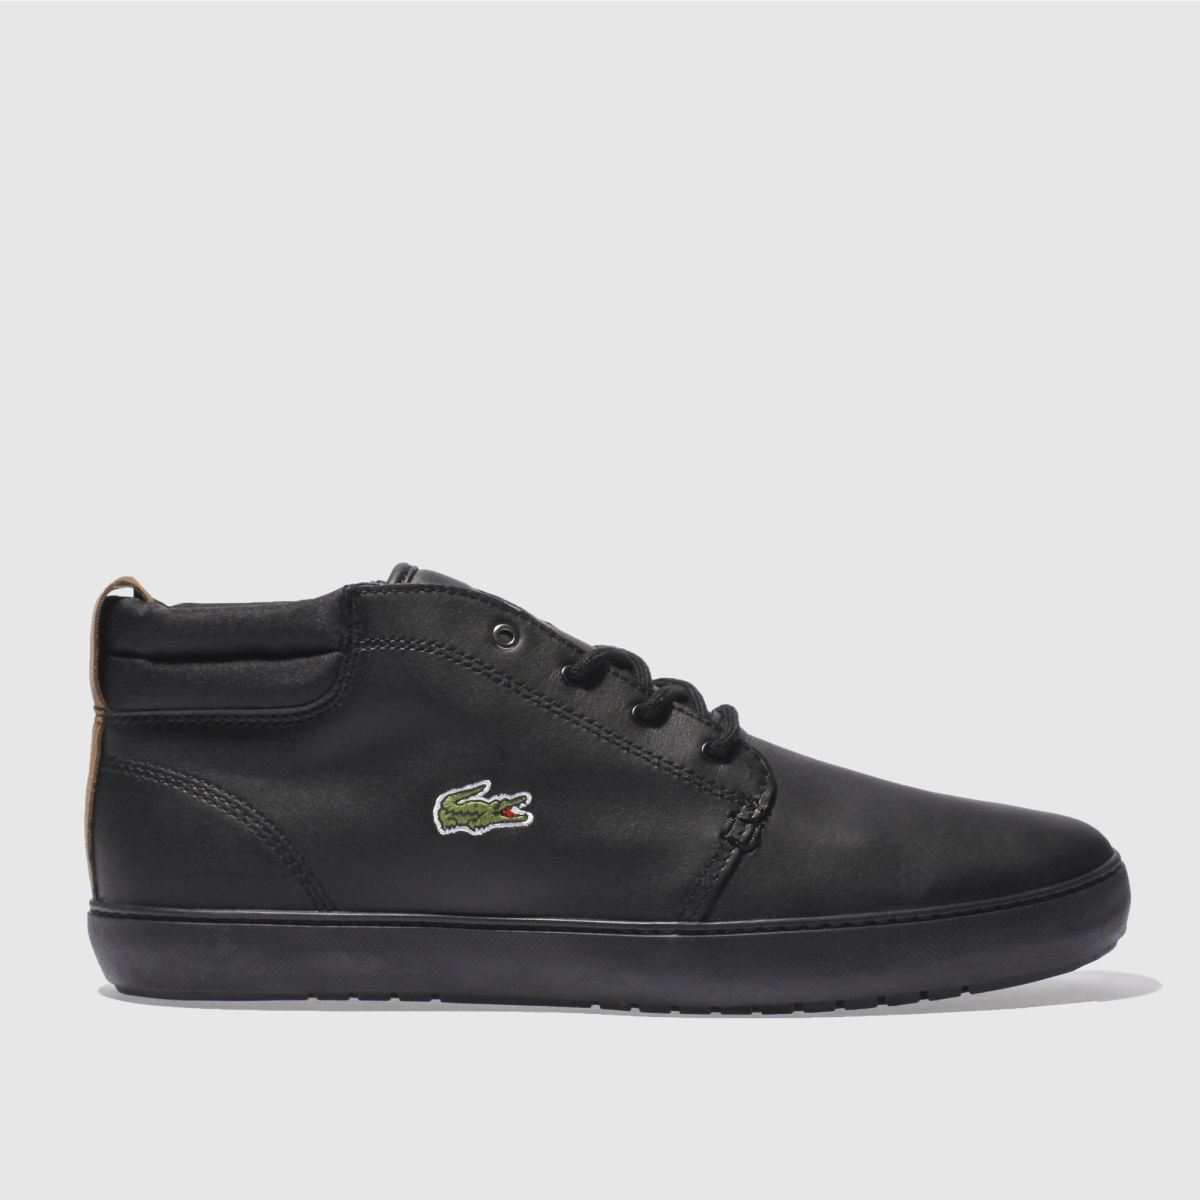 Lacoste Black Ampthill Terra 317 Trainers